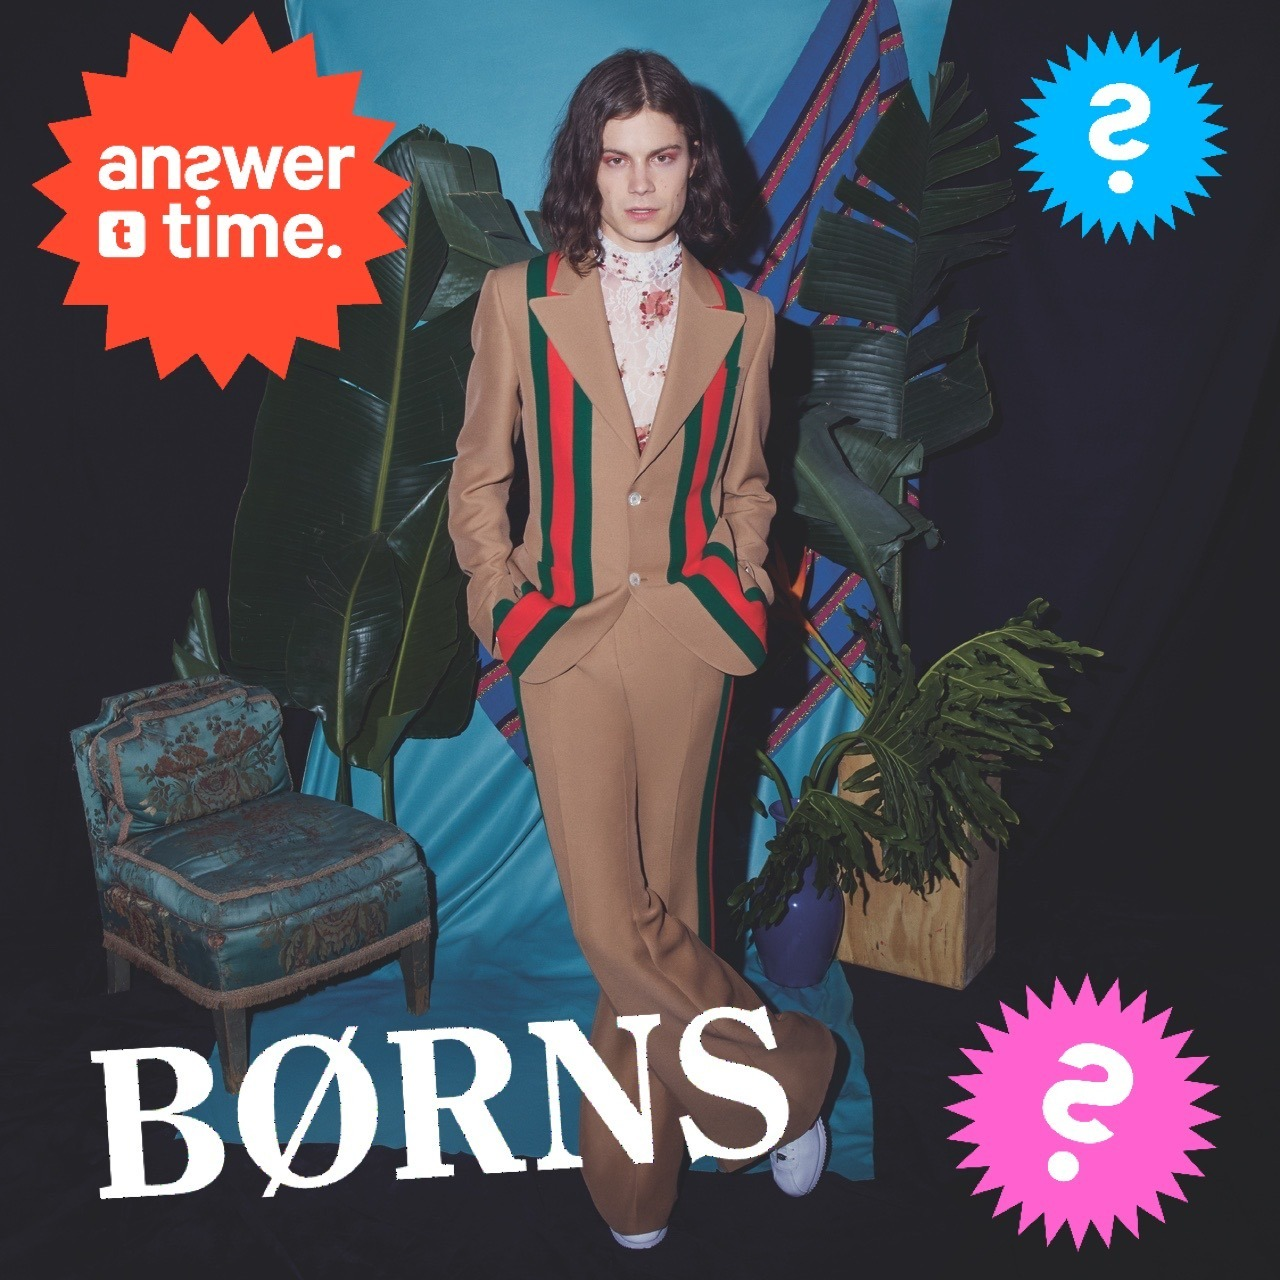 Posted by bornsmusic